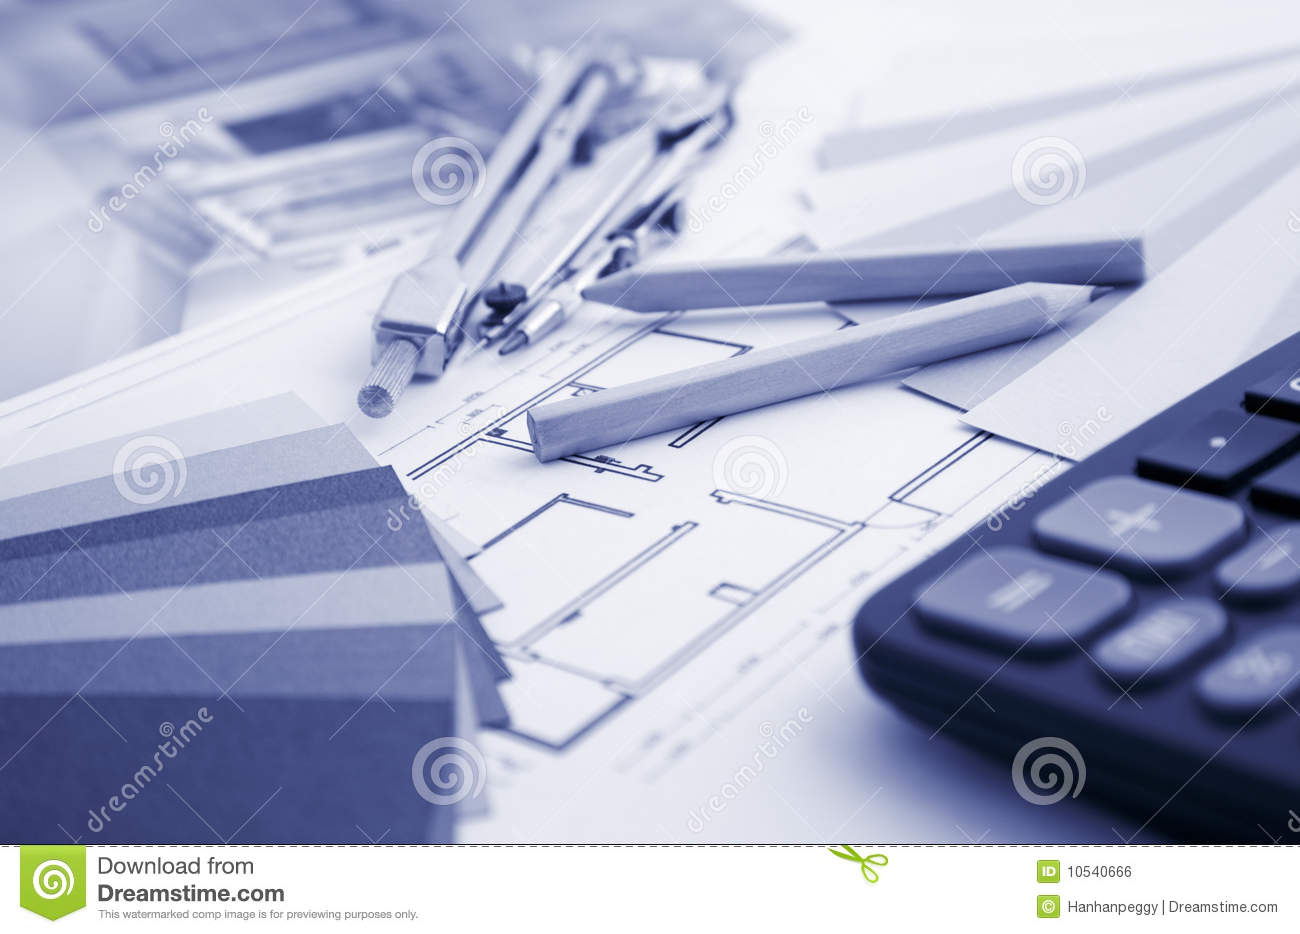 Residential interior design and tools royalty free stock for Interior design tools